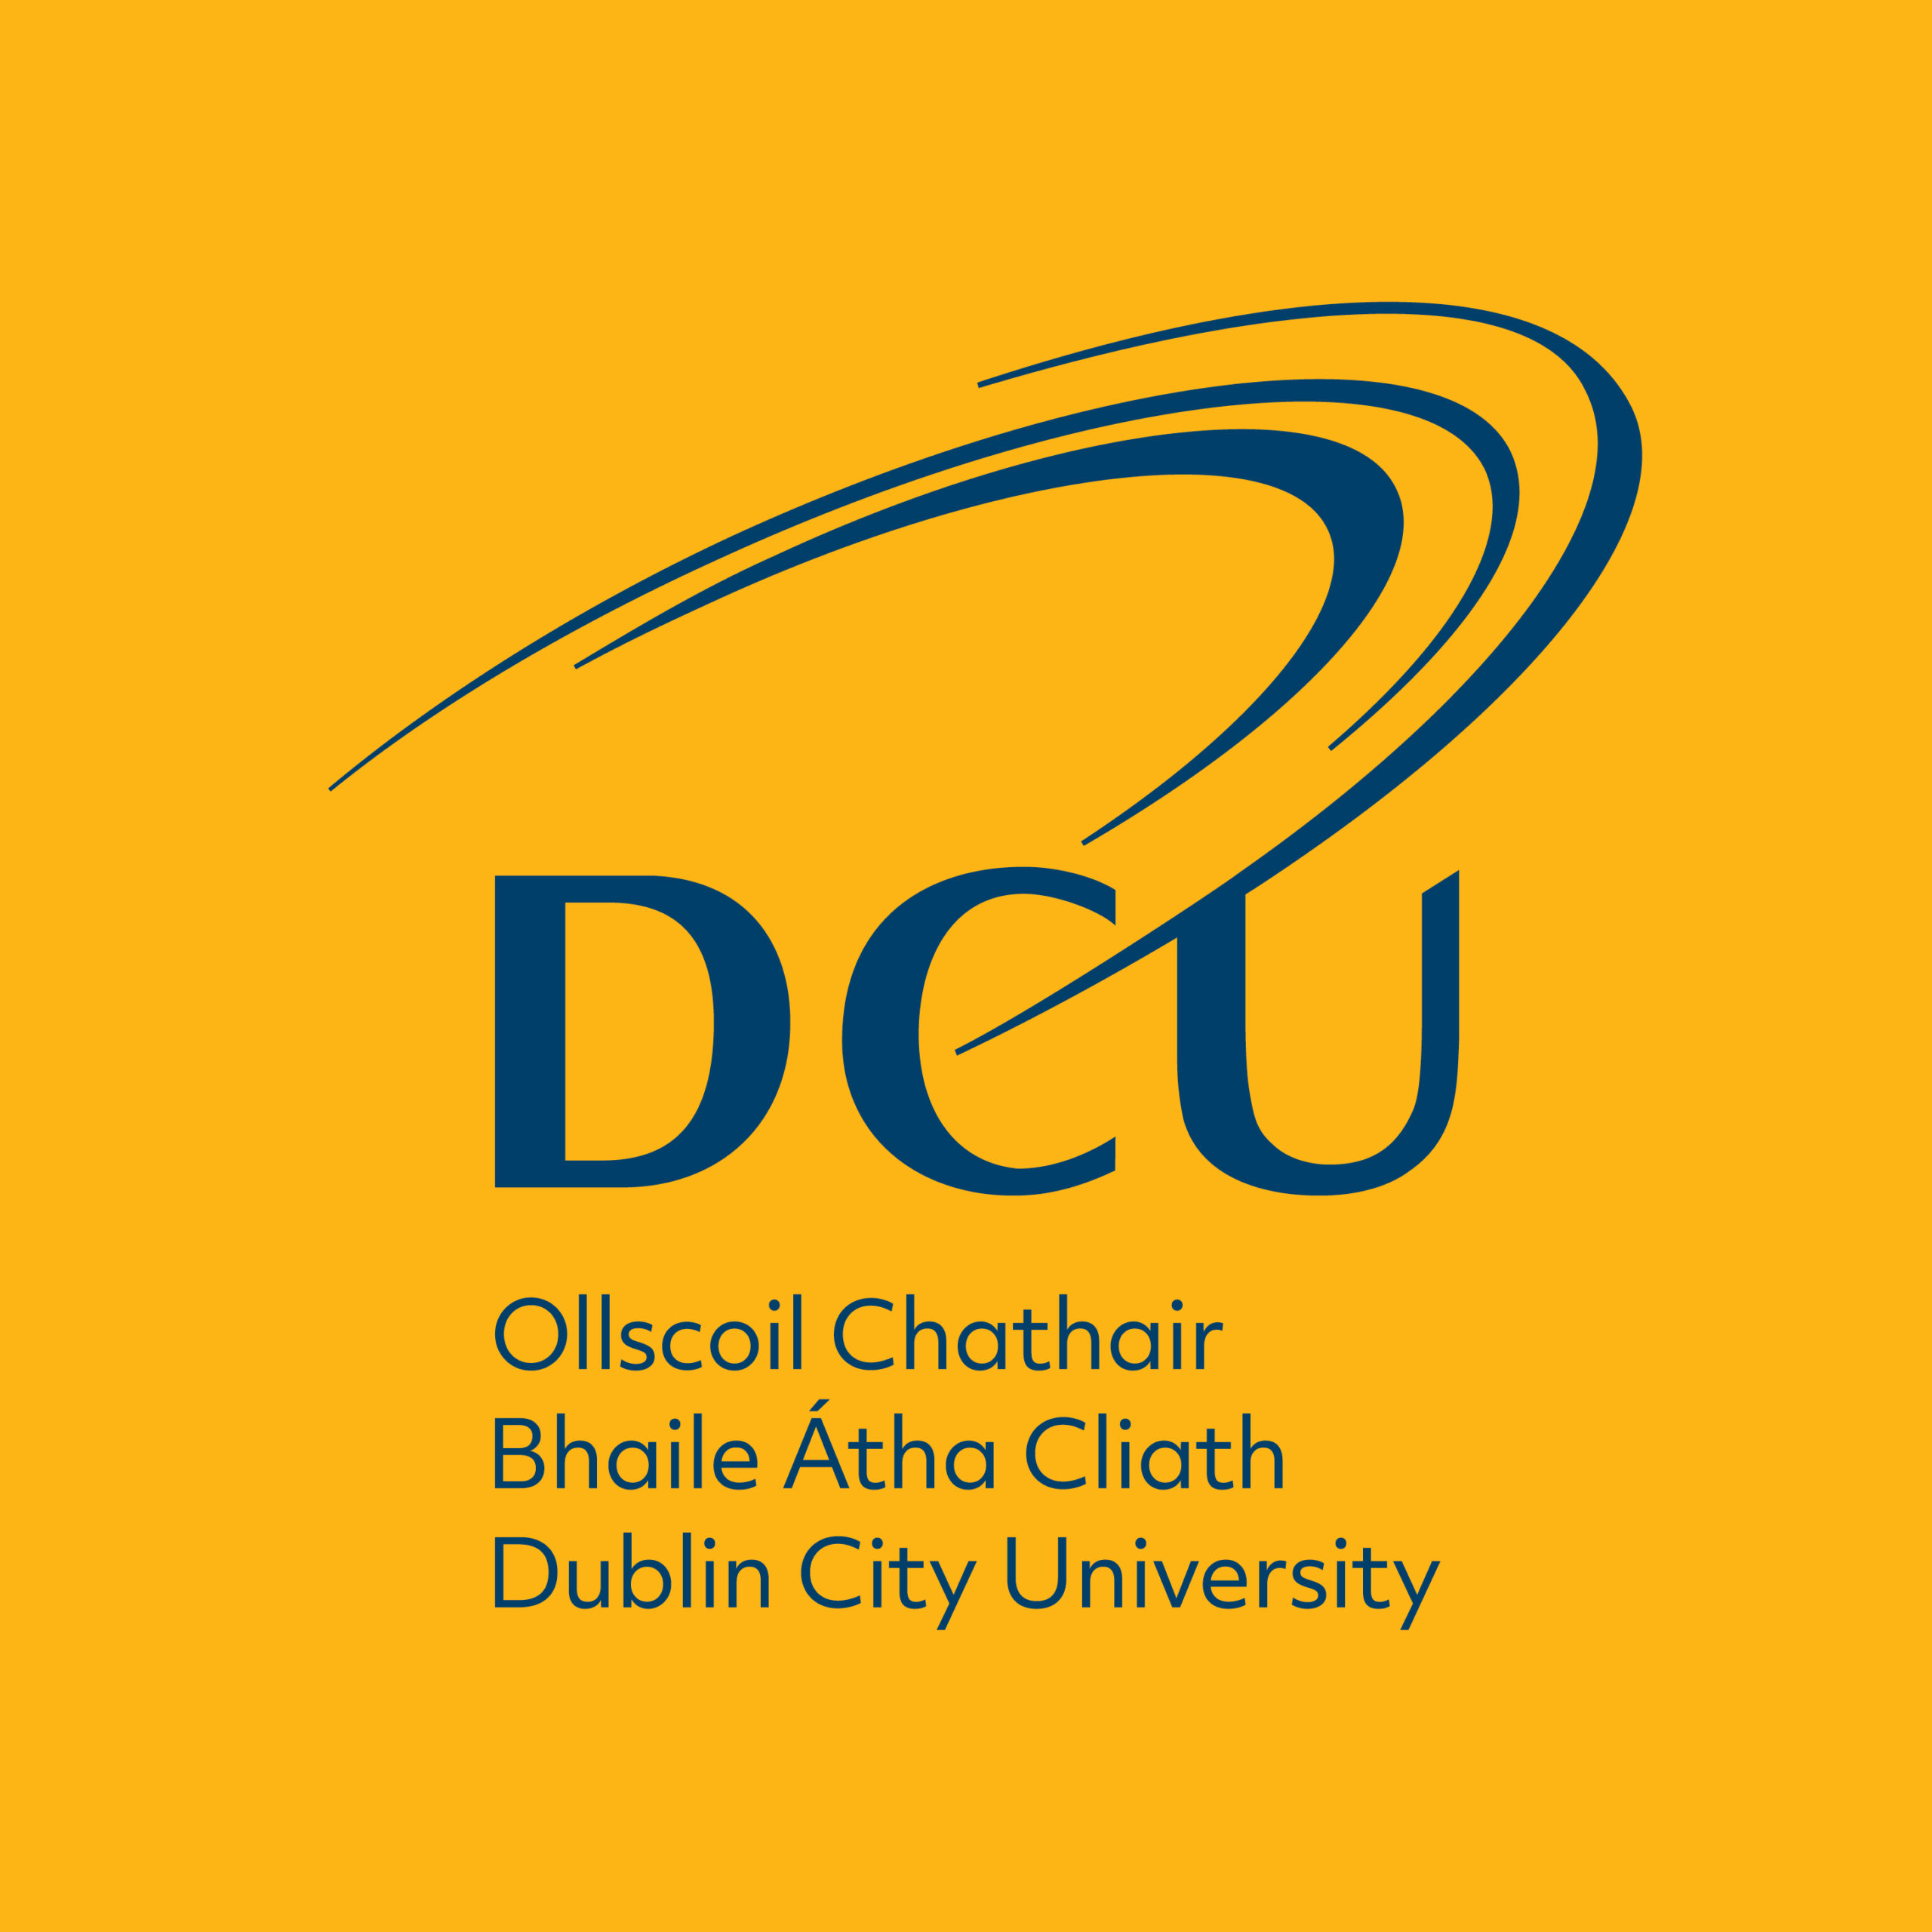 Discover great opportunities at DCU in 2021